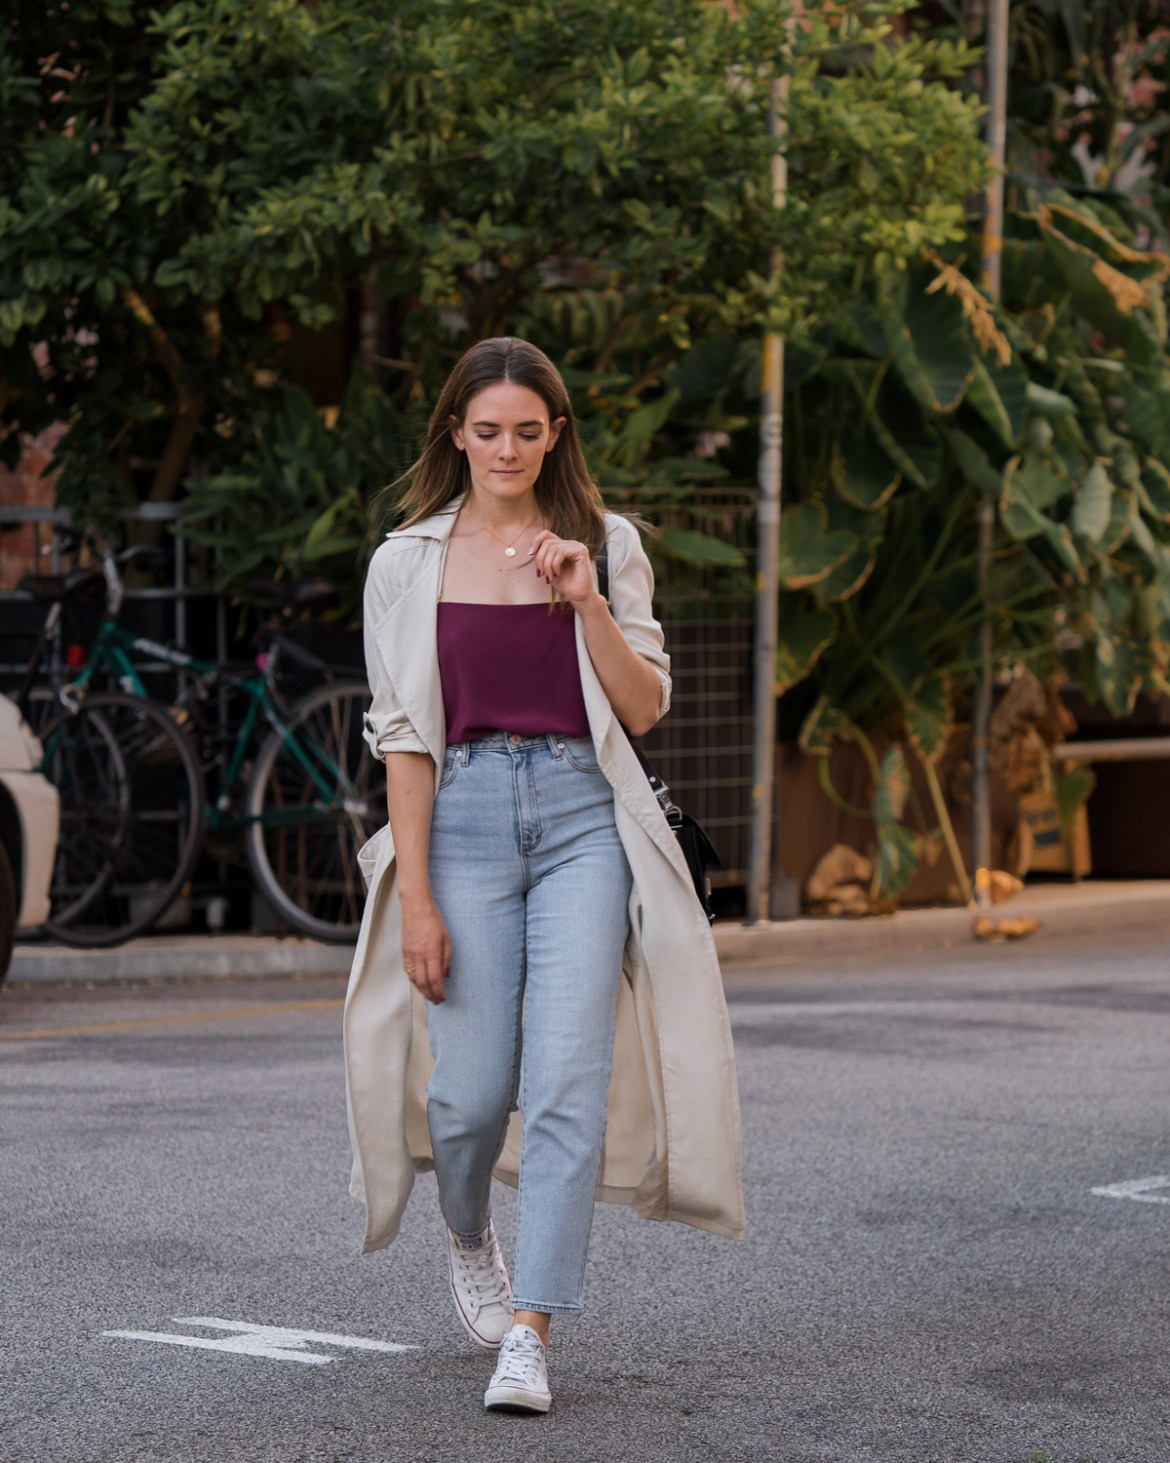 Valentine's Day wearing Mom jeans, maroon top and trench coat outfit worn by Inspiring Wit fashion blogger Jenelle Witty